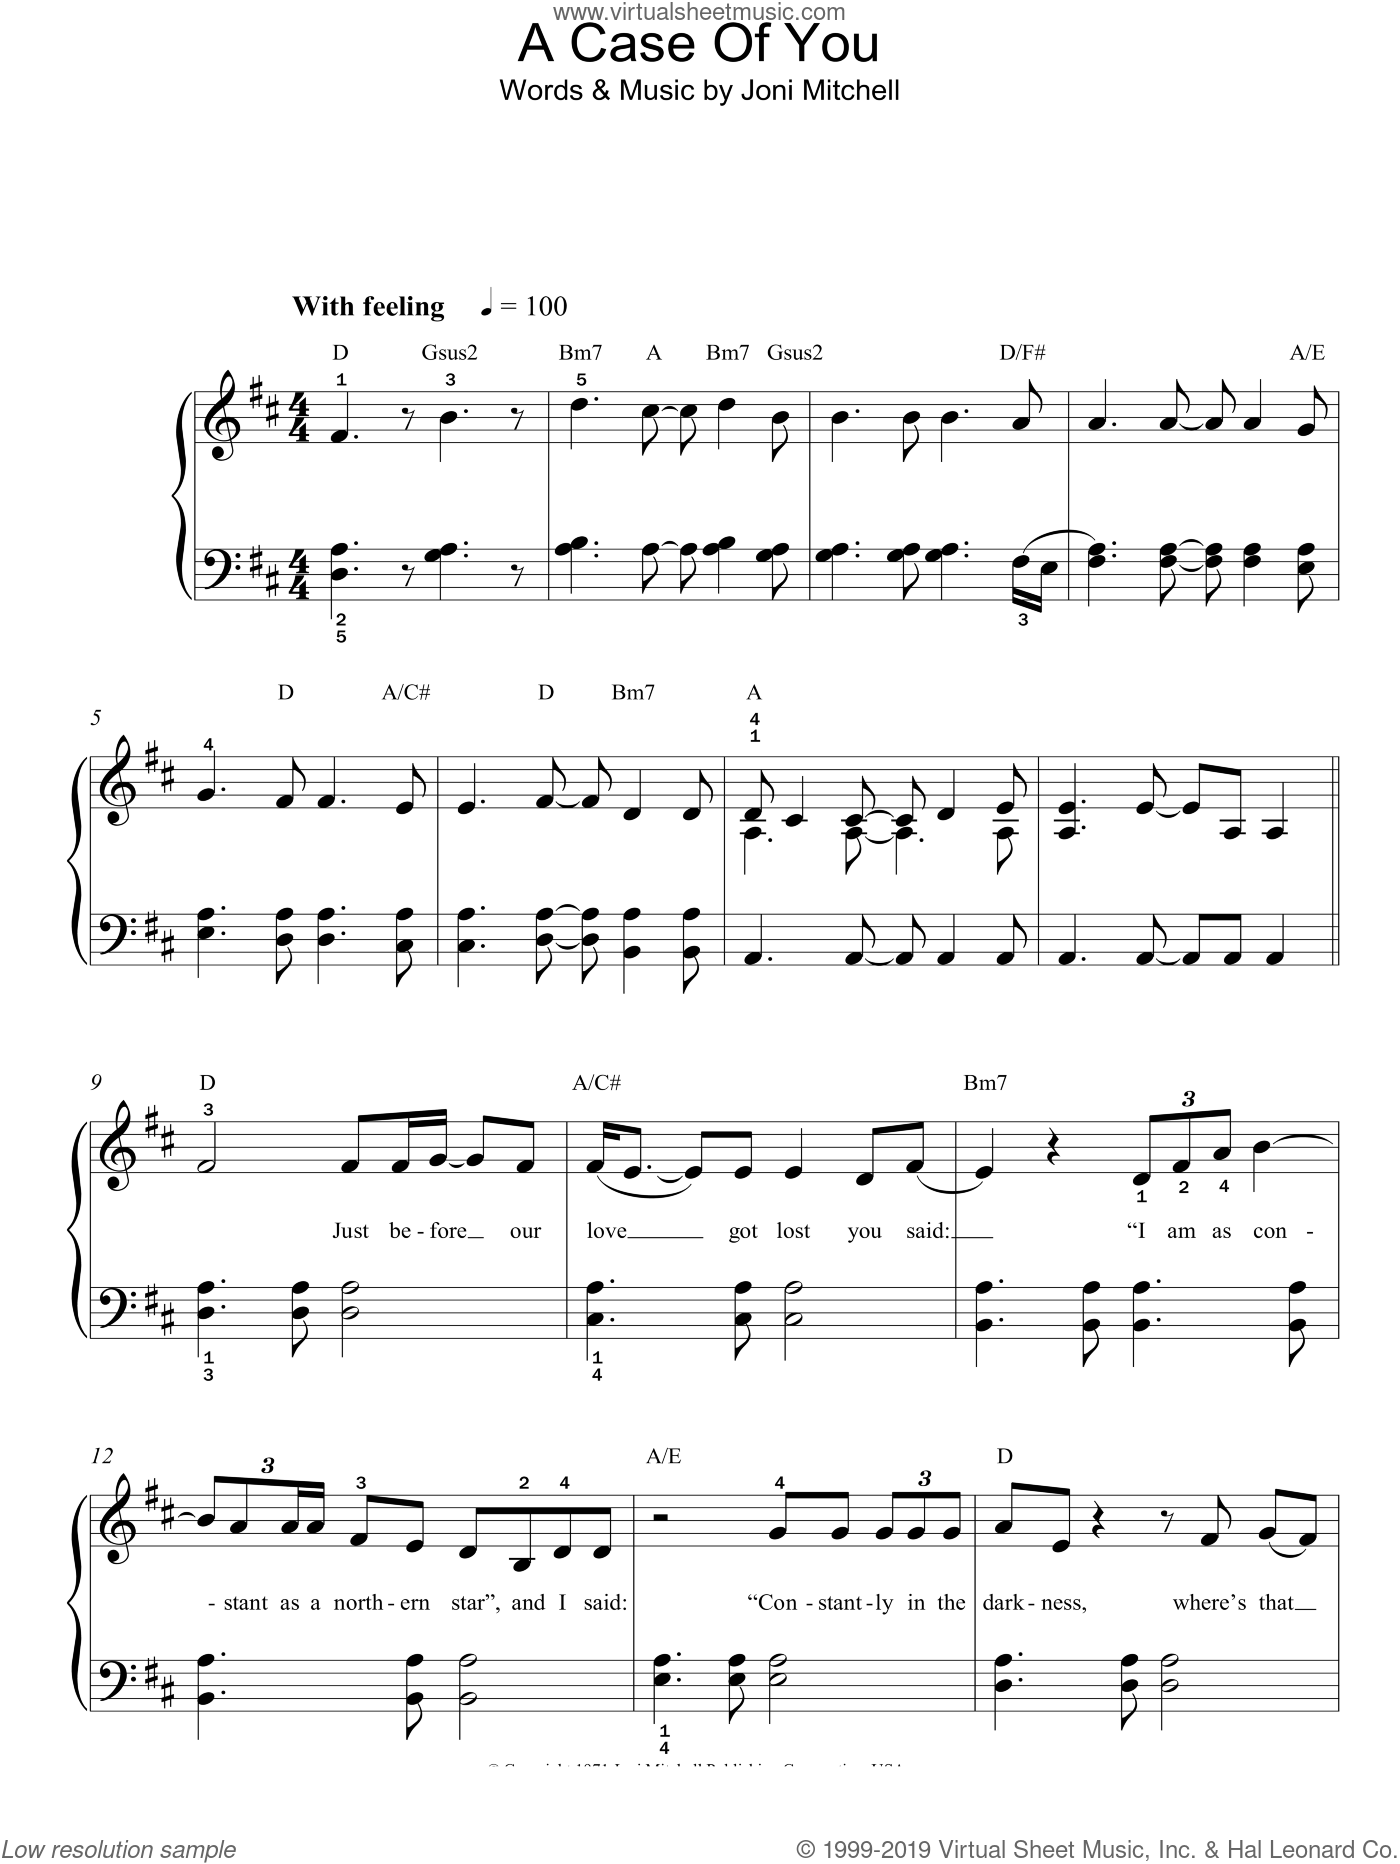 A Case Of You sheet music for piano solo by Joni Mitchell, easy skill level